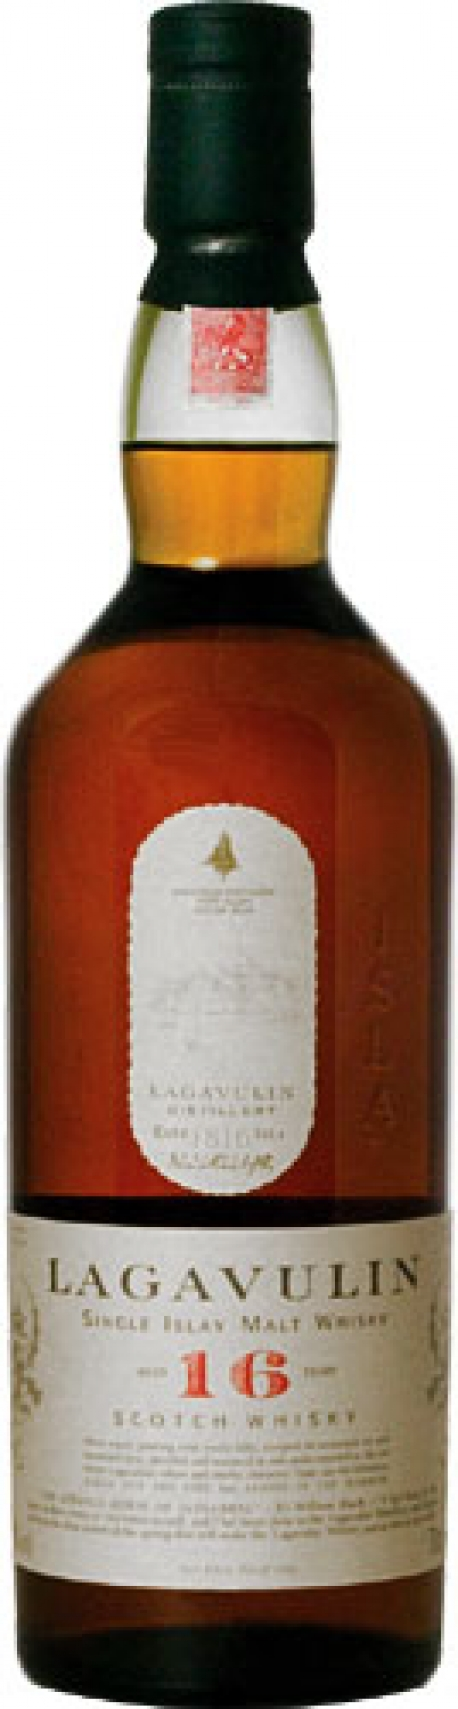 Image of Lagavulin - 16 Year Old